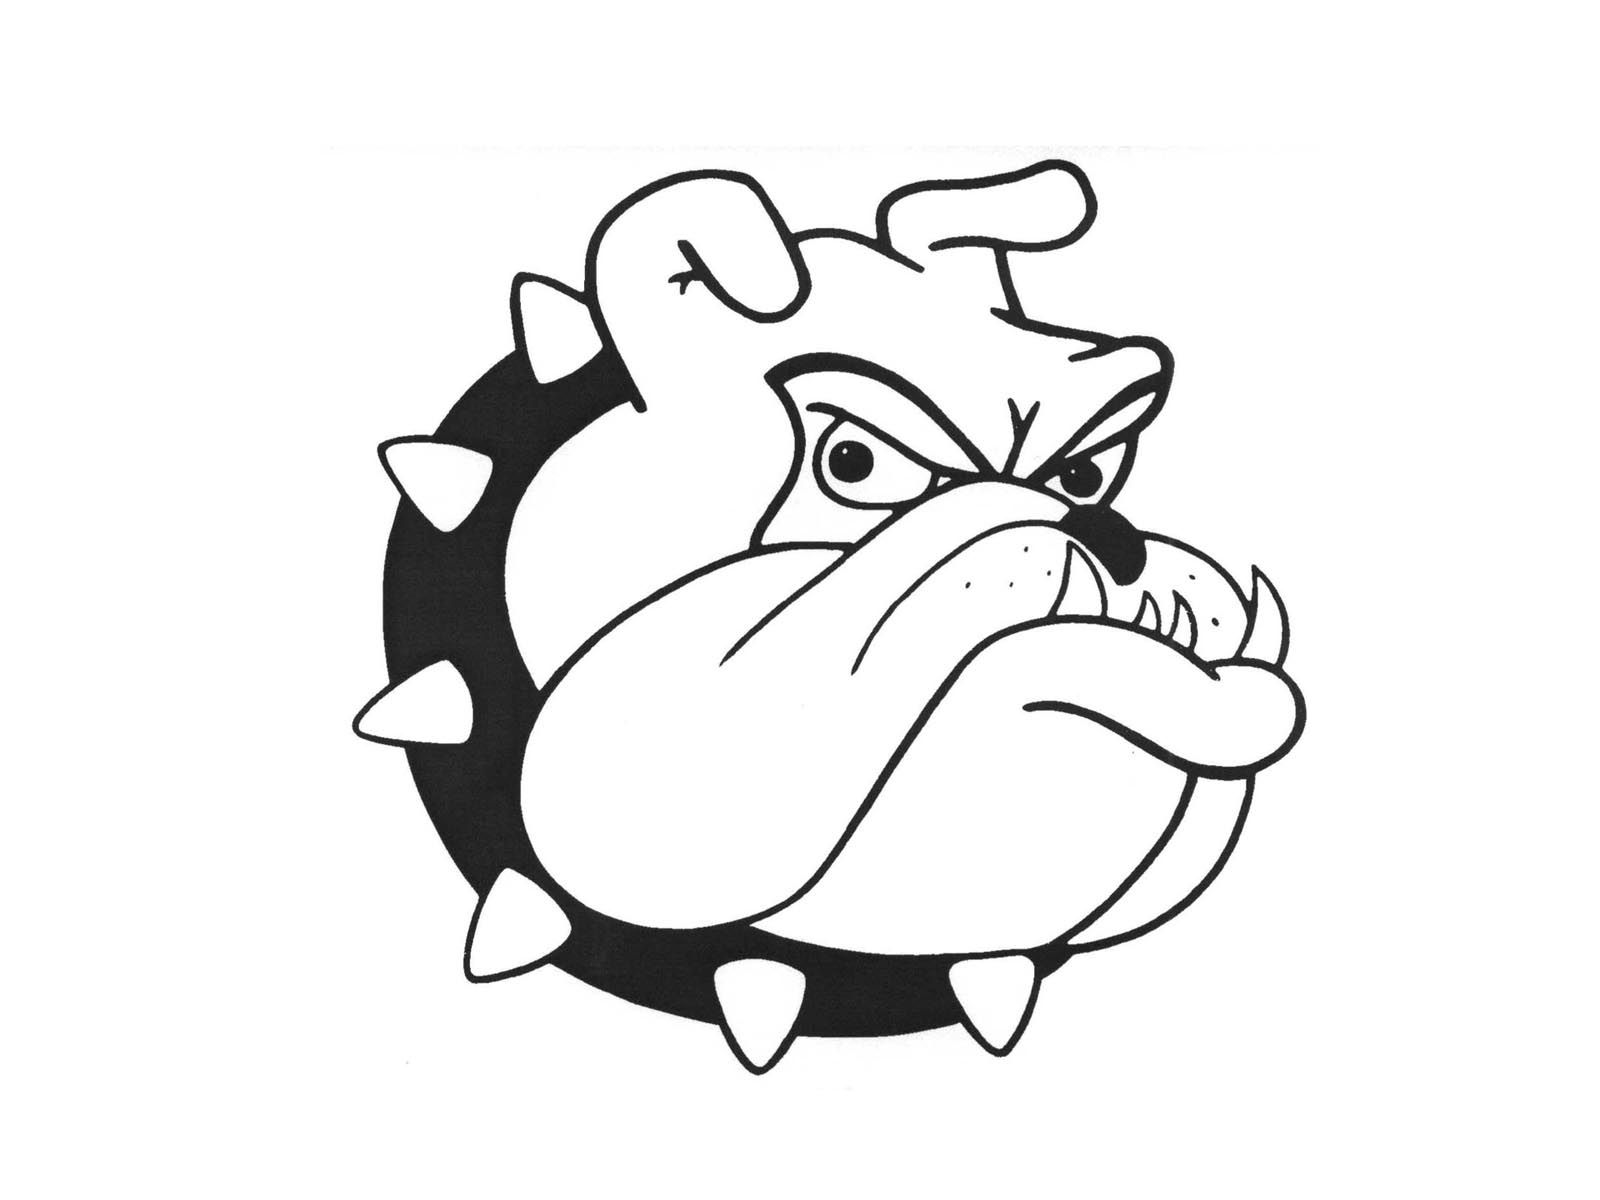 14 Cartoon Bulldog Images Free Cliparts That You Can Download To